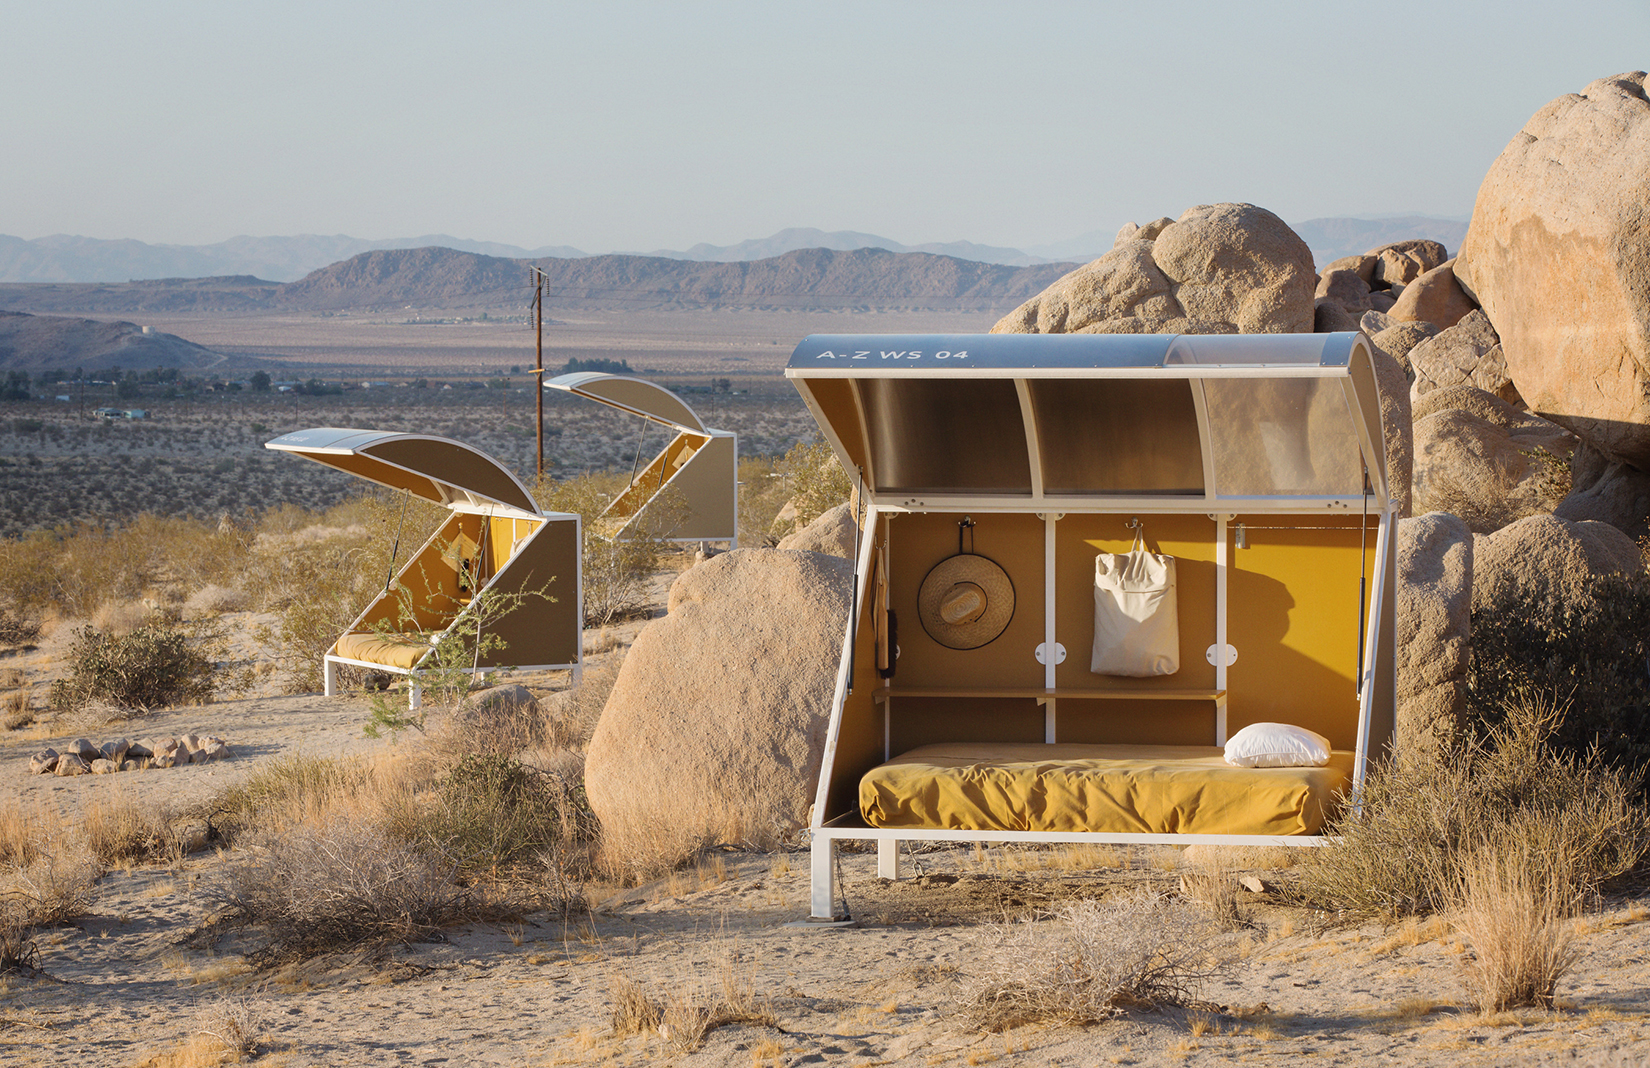 Wagon Station Encampment in Joshua Tree, USA